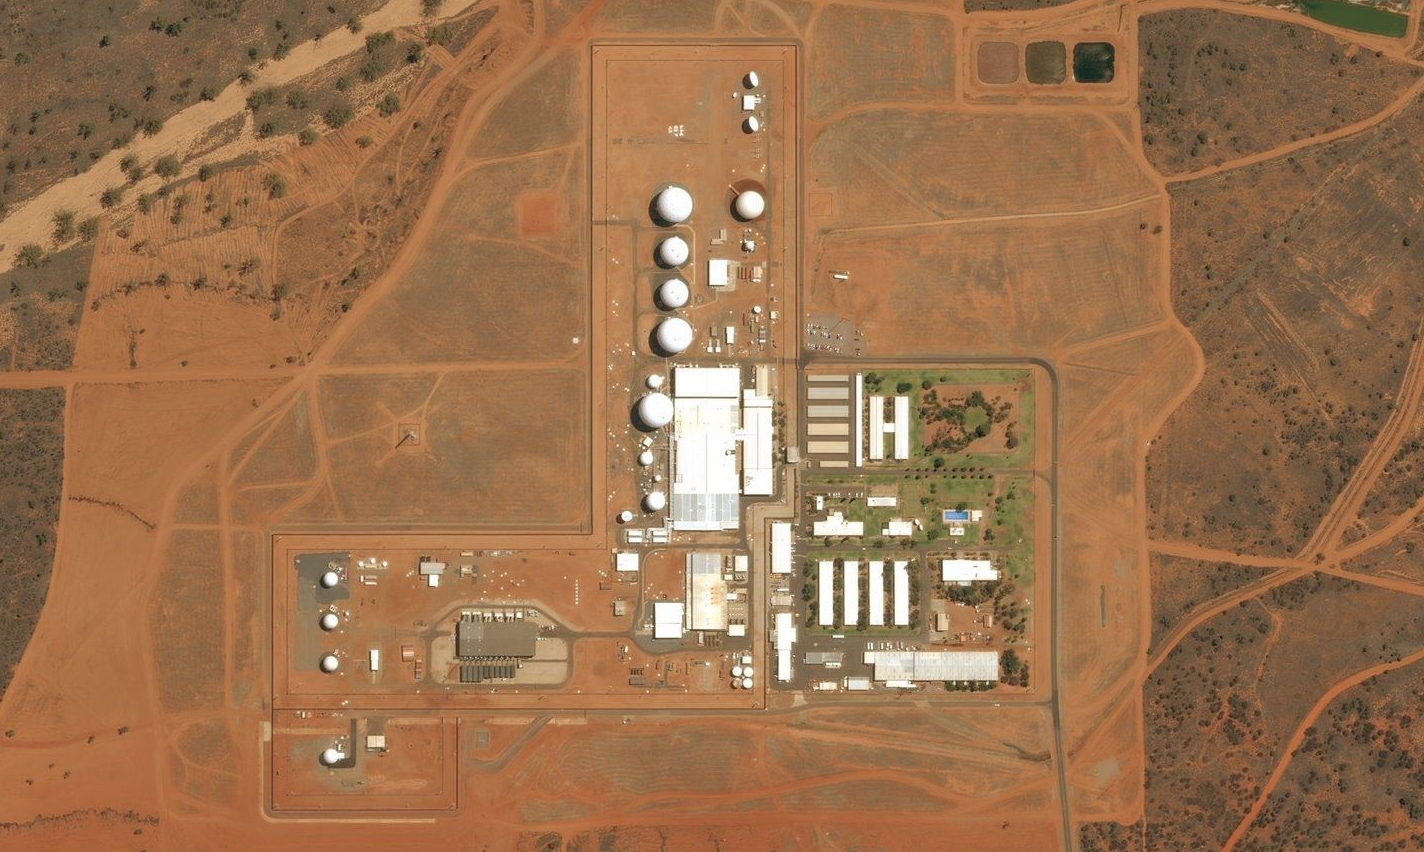 Joint Defence Facility Pine Gap